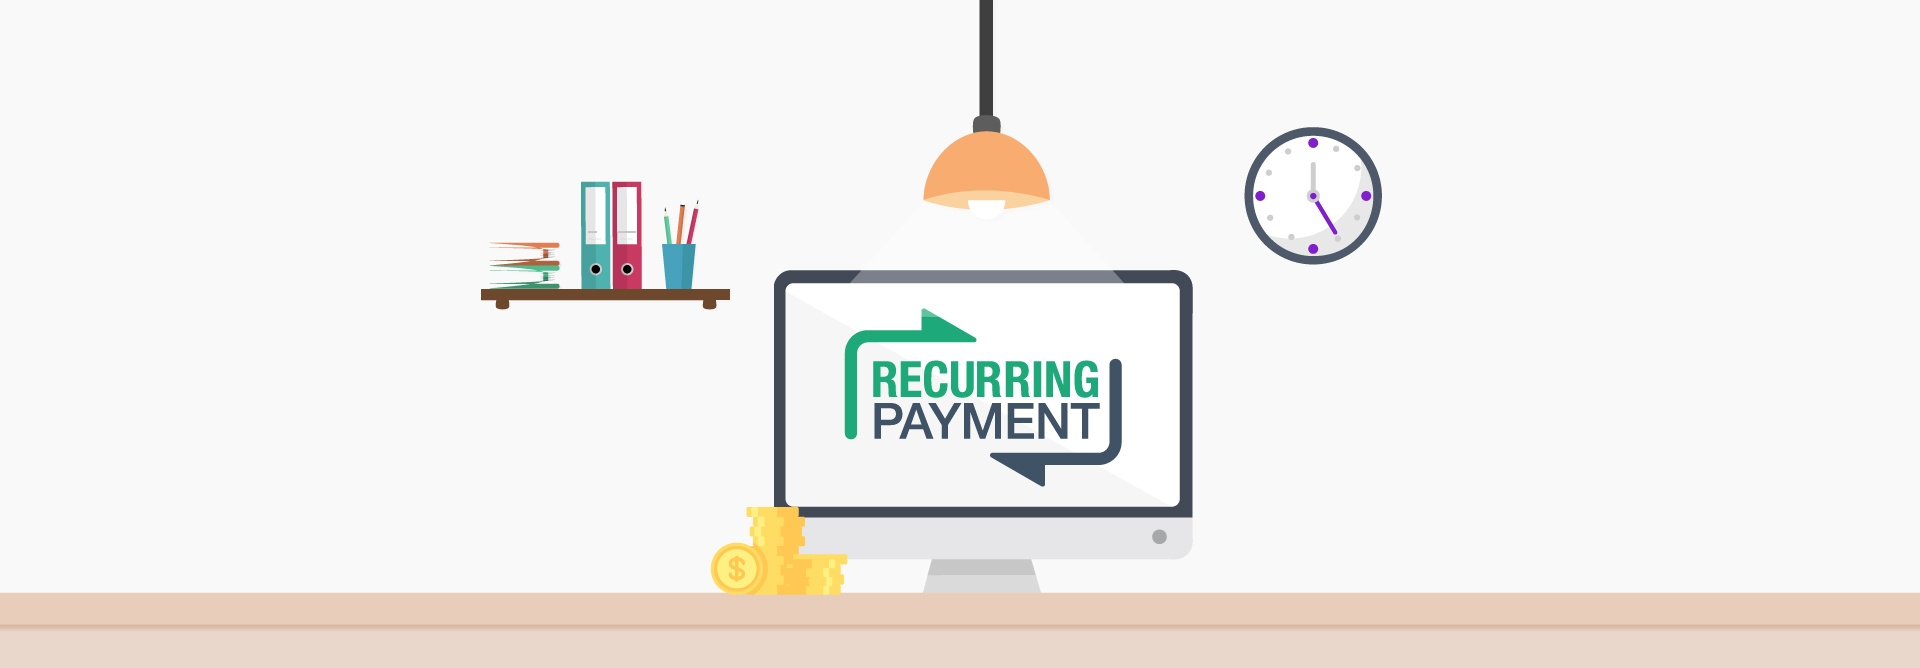 What Do You Need To Know About MOLPay Recurring Payments?